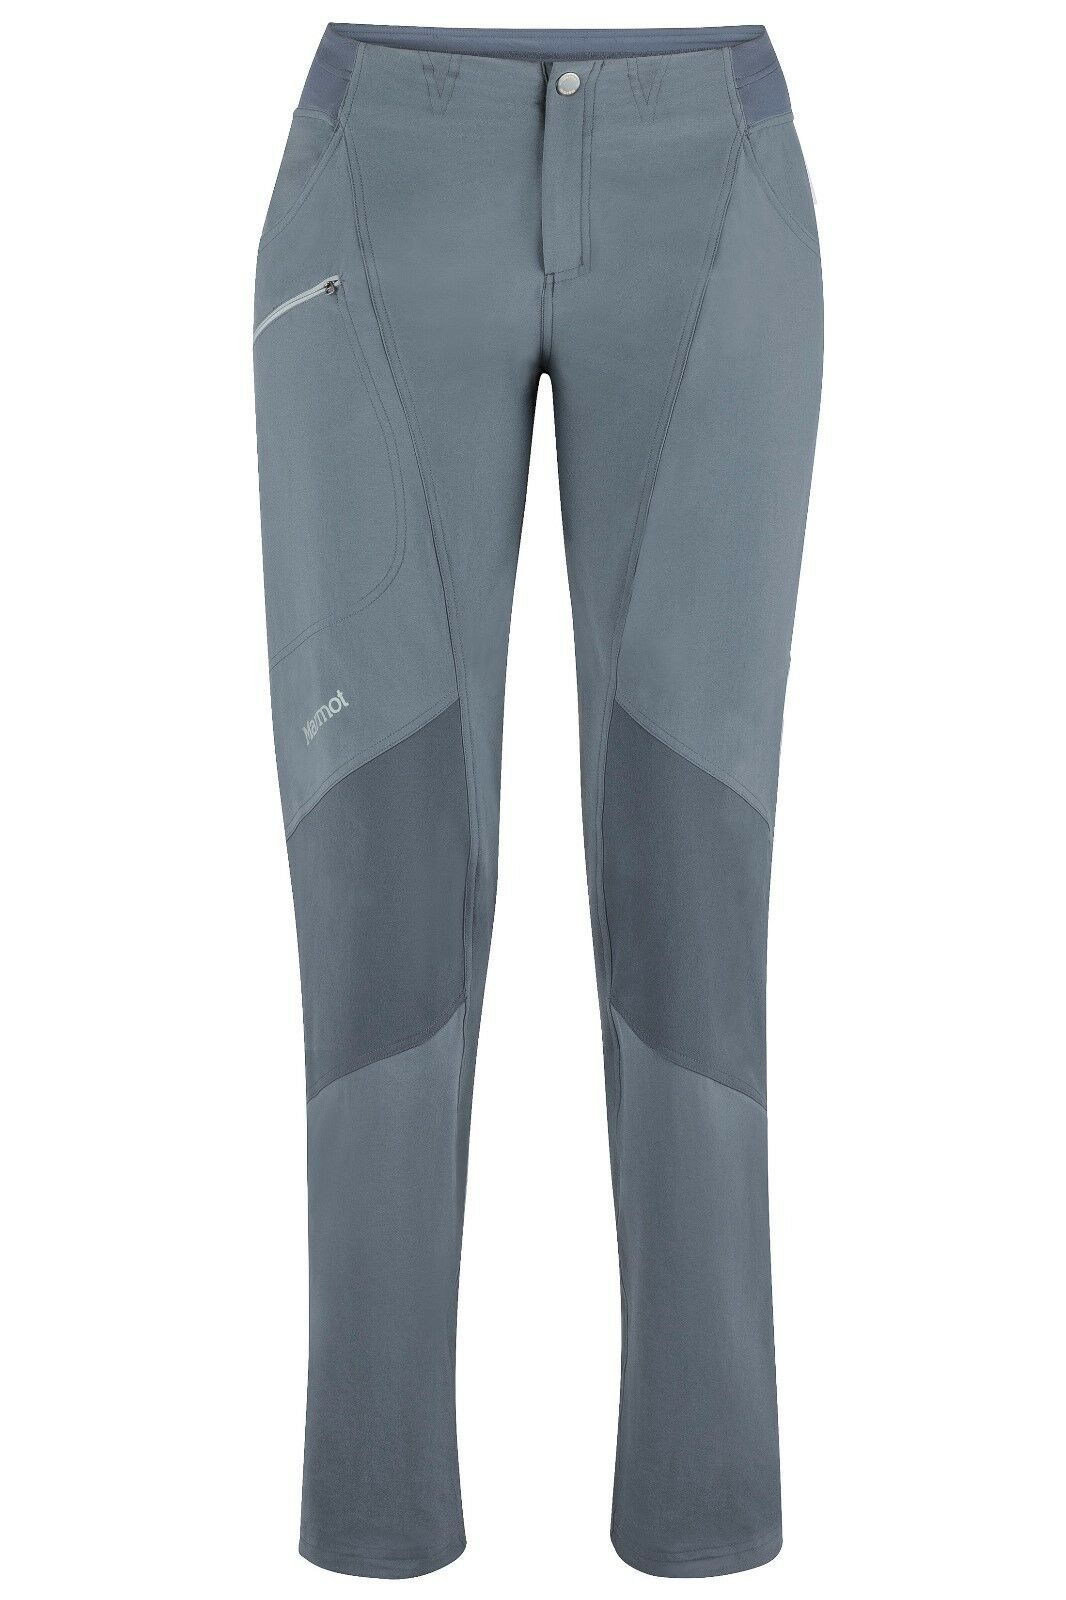 Marmot Scrambler Pant Women, Soft Shell Trousers for  Ladies, Steel Onyx  looking for sales agent